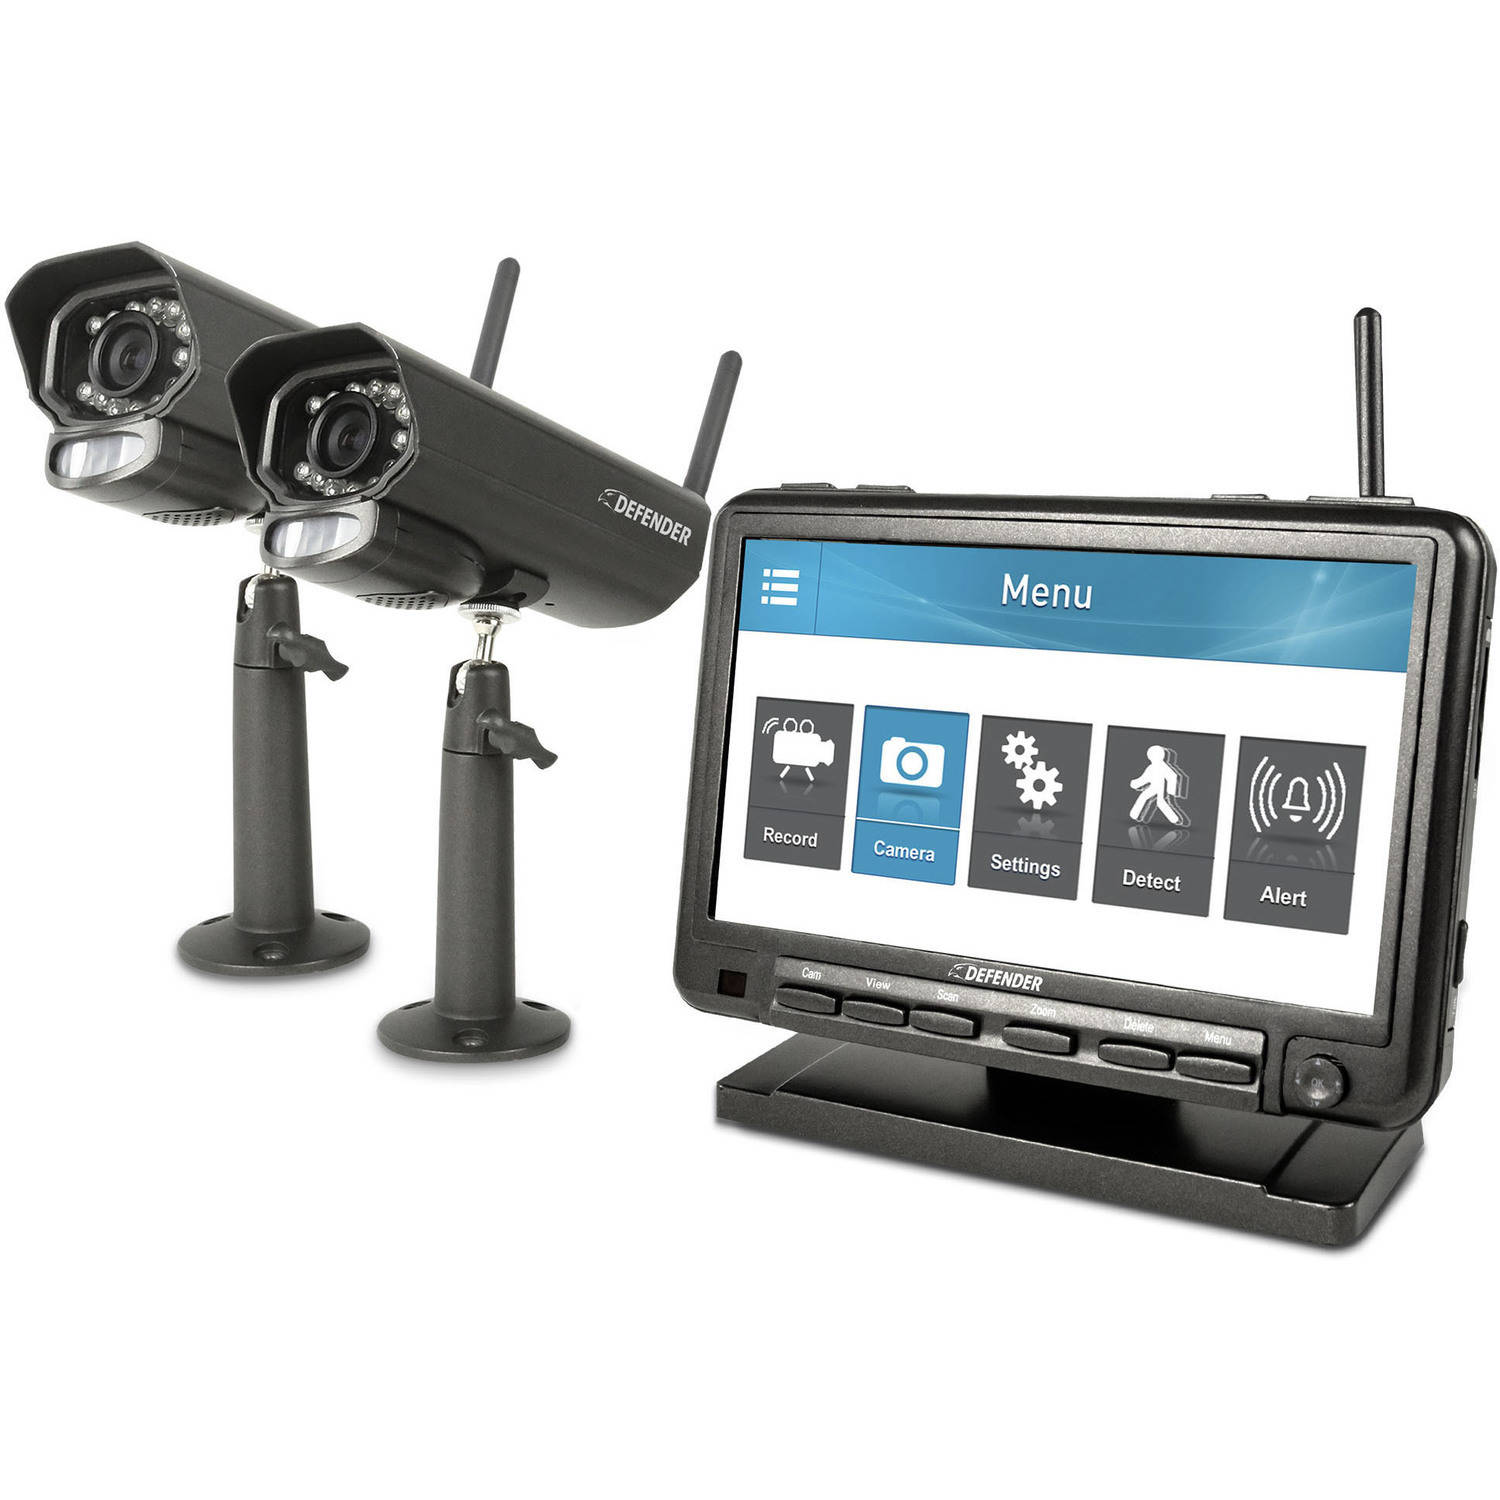 Accessories To Enhance The Business Security System